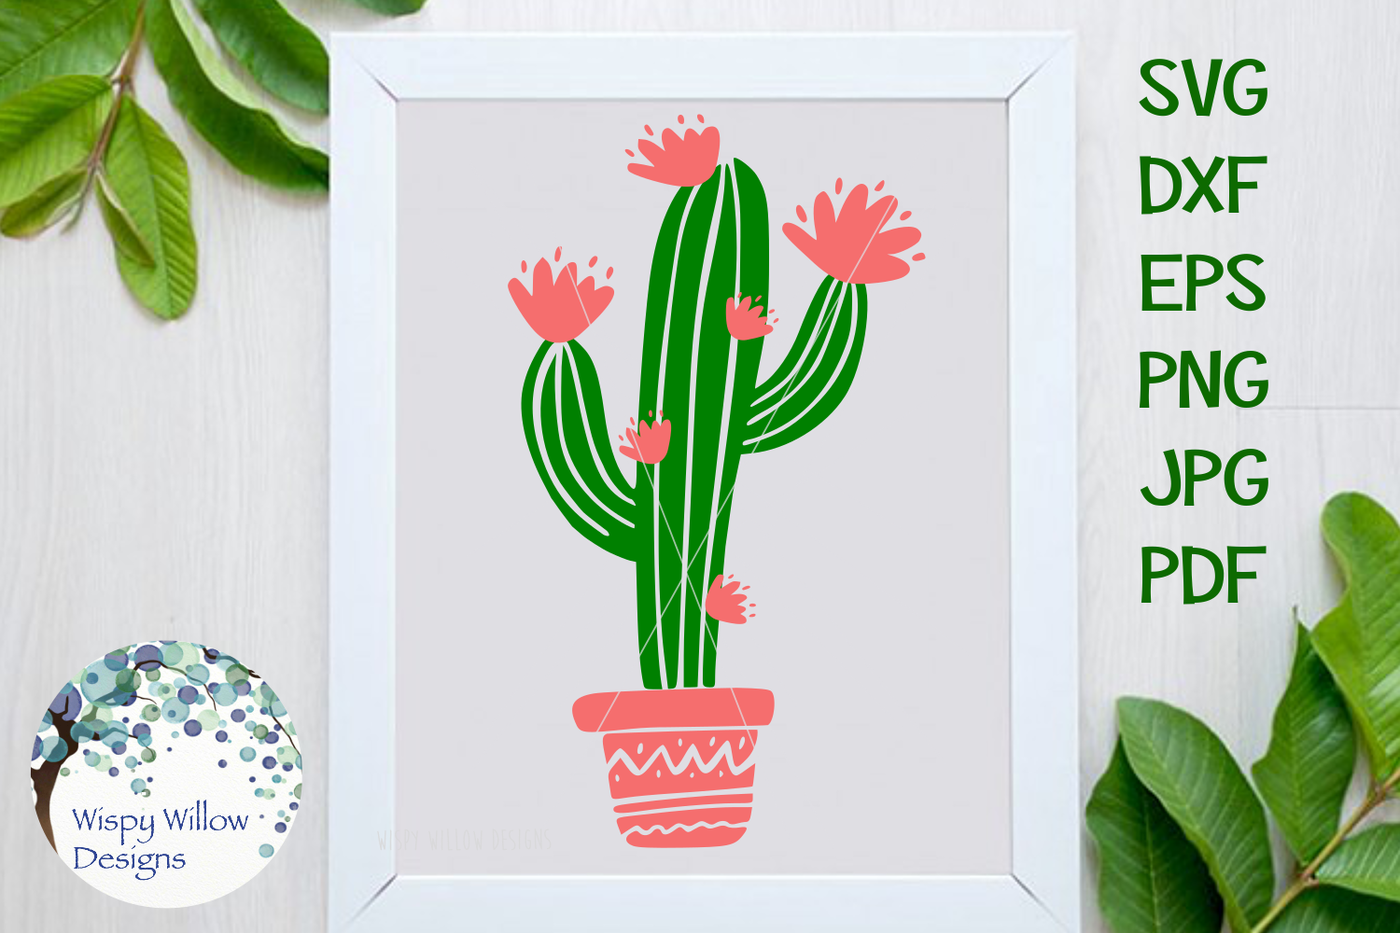 Floral Cactus Svg Dxf Eps Png Jpg Pdf By Wispy Willow Designs